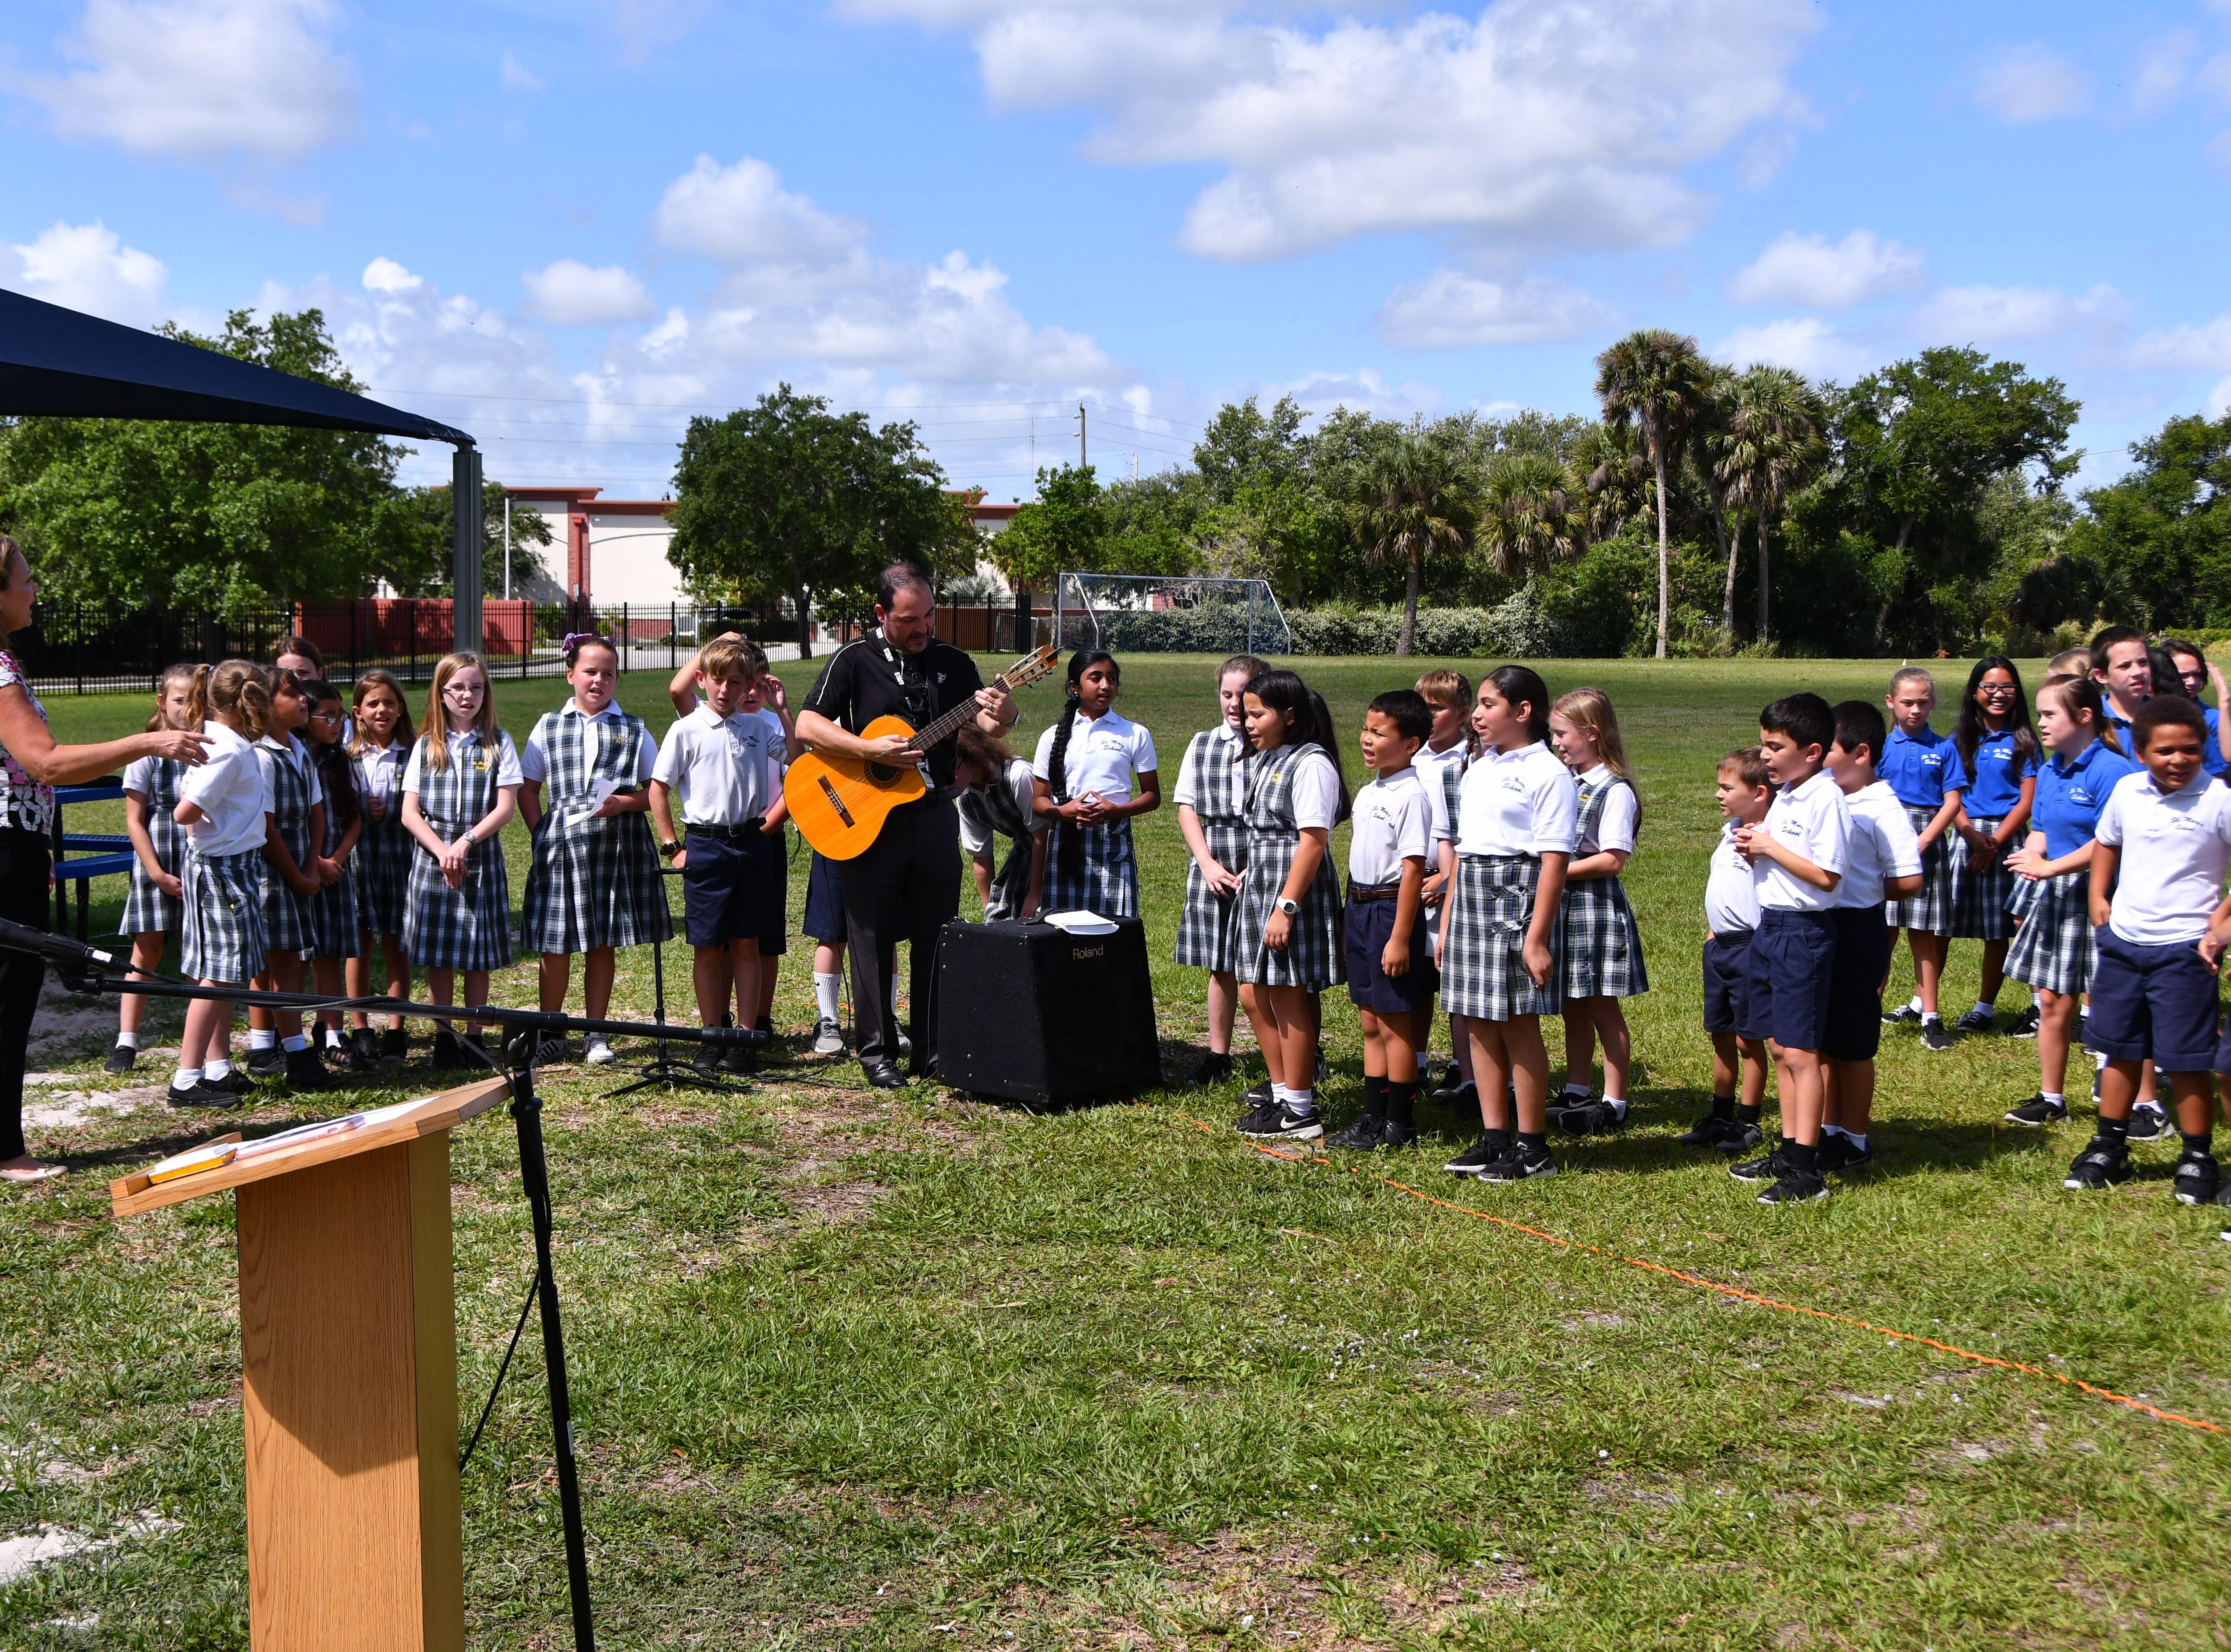 The school choir sang for the event.  St. Mary Catholic School in Rockledge hosted a dedication ceremony for its newly constructed shade structures Wednesday morning made possible by a grant from the American Academy of DermatologyÕs Adopt-A-Shade program. Board-certified dermatologist, Francille MacFarland, MD, FAAD, provided a generous donation to the AAD, which completed the funding necessary to build the structure over the schoolÕs primary playground and picnic area. The shade will help protect more than 250 children and teachers daily from the sunÕs harmful ultraviolet rays. Other parishioners, families, doctors and school fund raisers helped cover the cost.